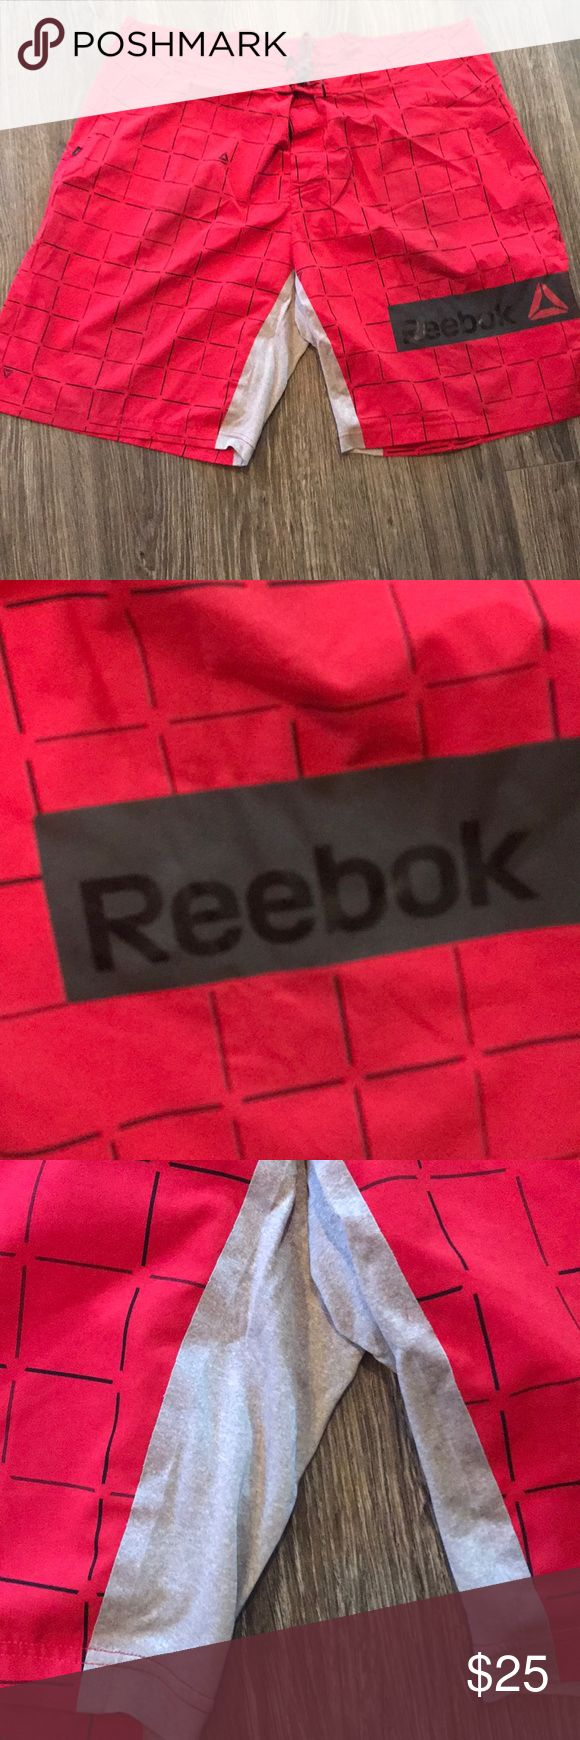 Men's Reebok Crossfit Shorts Great used condition No rips, stains Comes to you from smoke free home Reebok Shorts Athletic